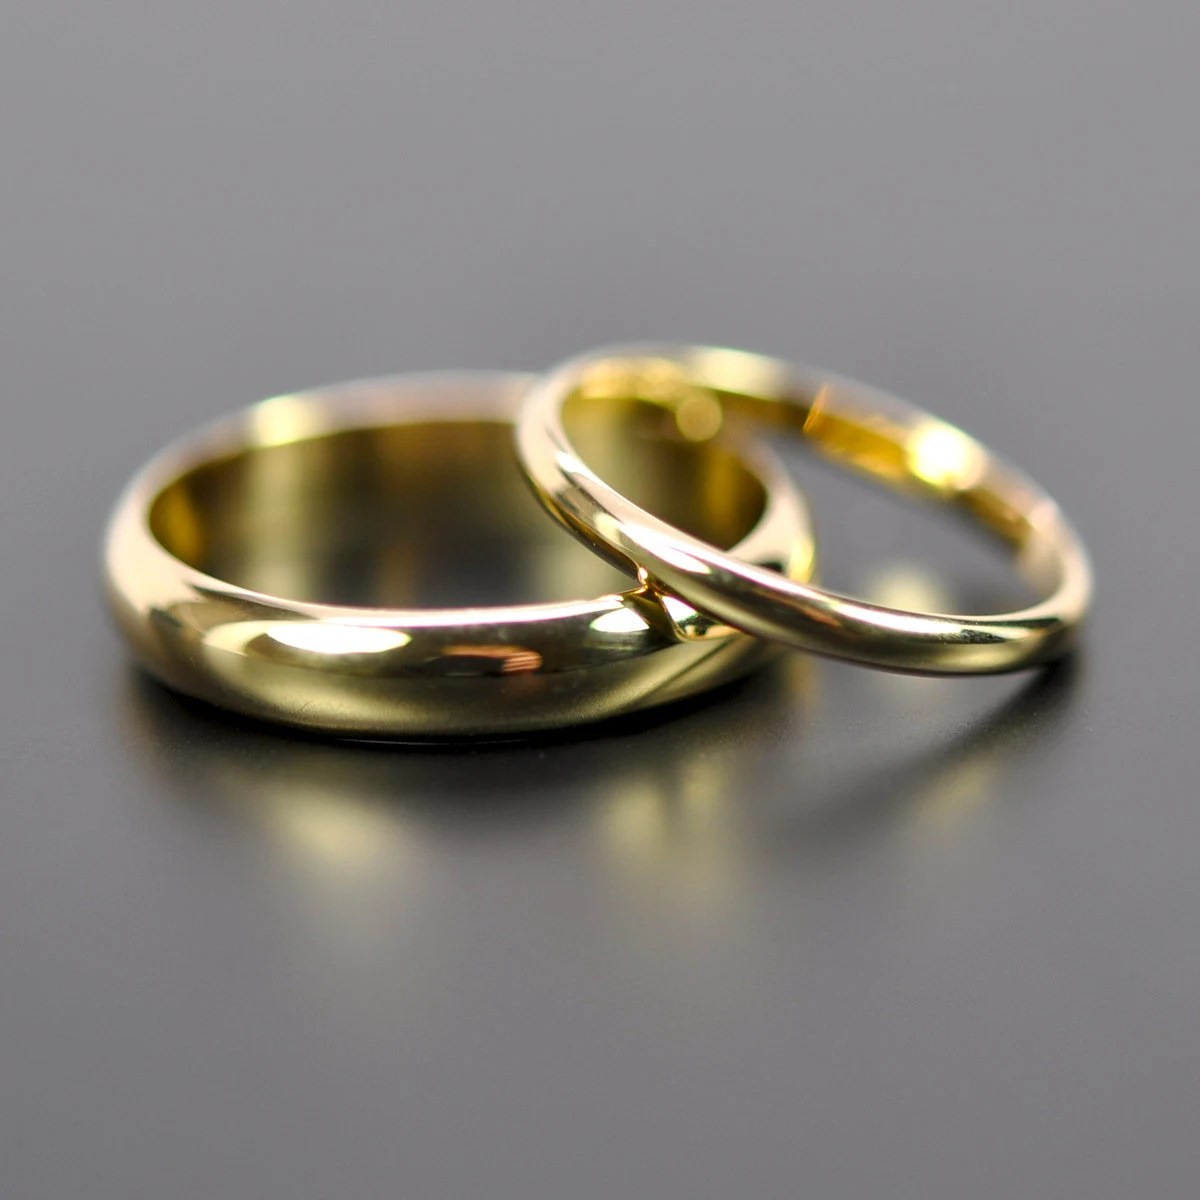 18K Yellow Gold Classic Wedding Band Set His And Hers Rings